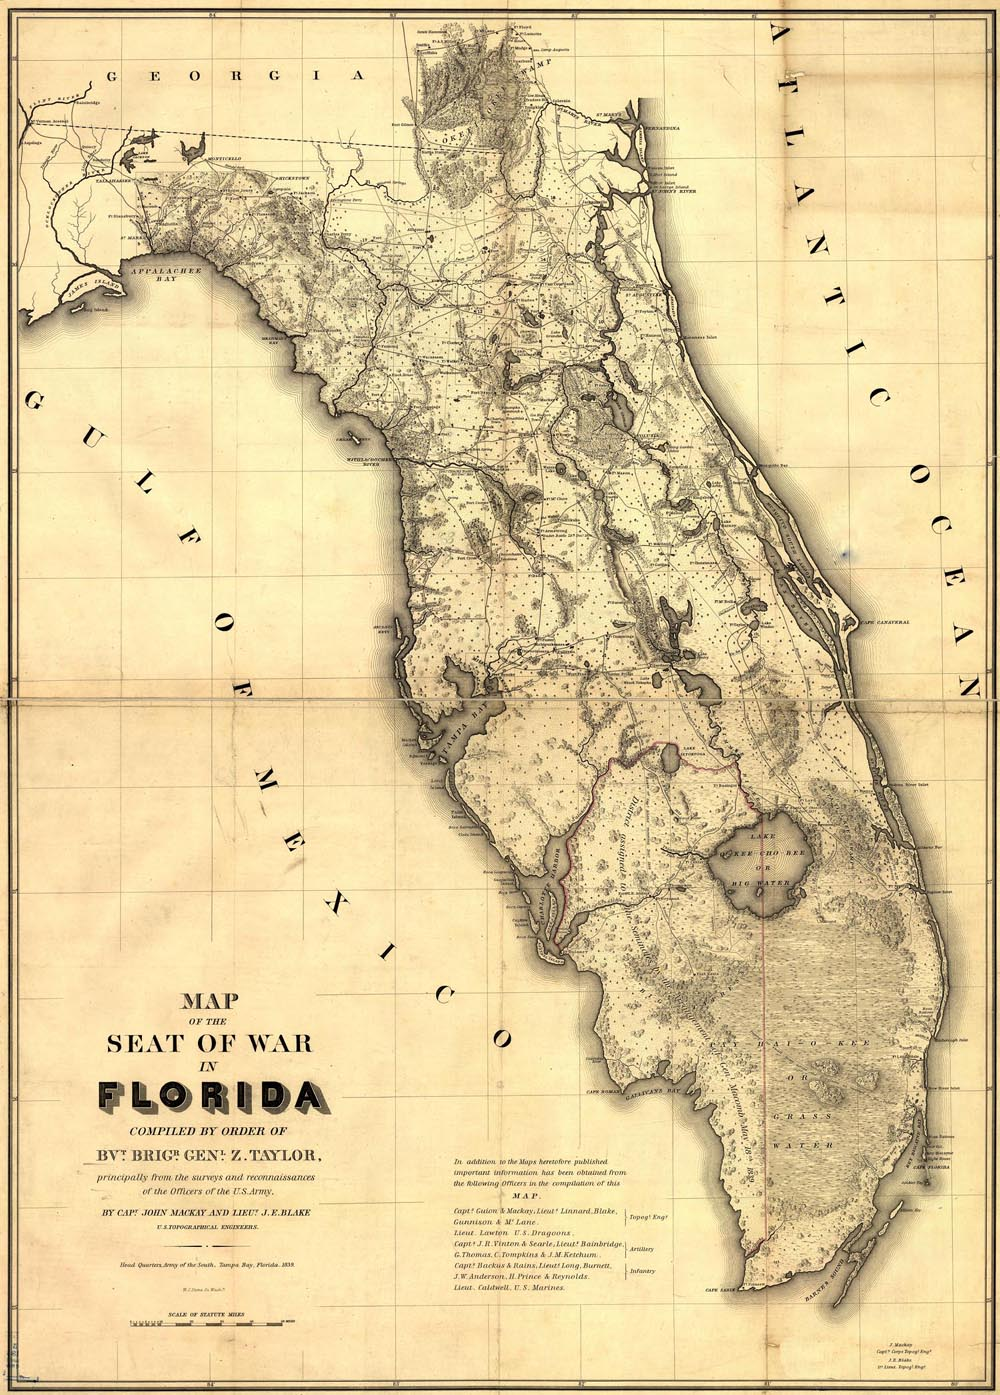 We found the following information that refers to a possible curse placed by the Seminole Indians about the everglades.